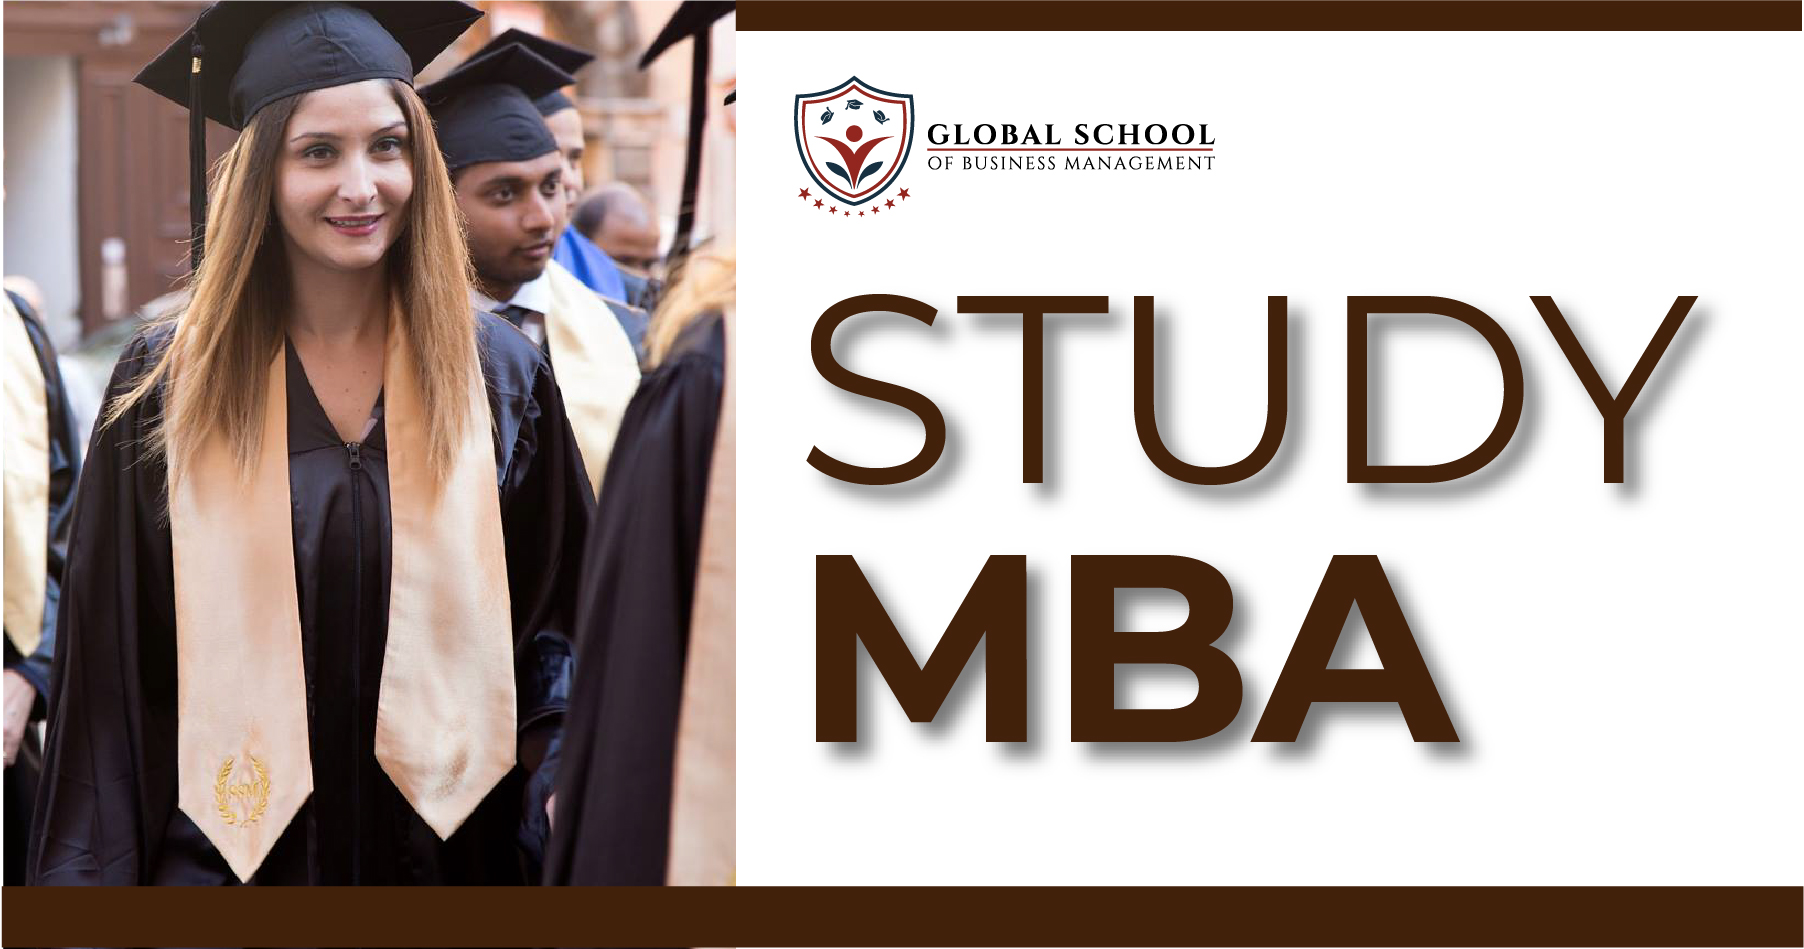 2021 MBA Scholarships - Join Global School of Business Management